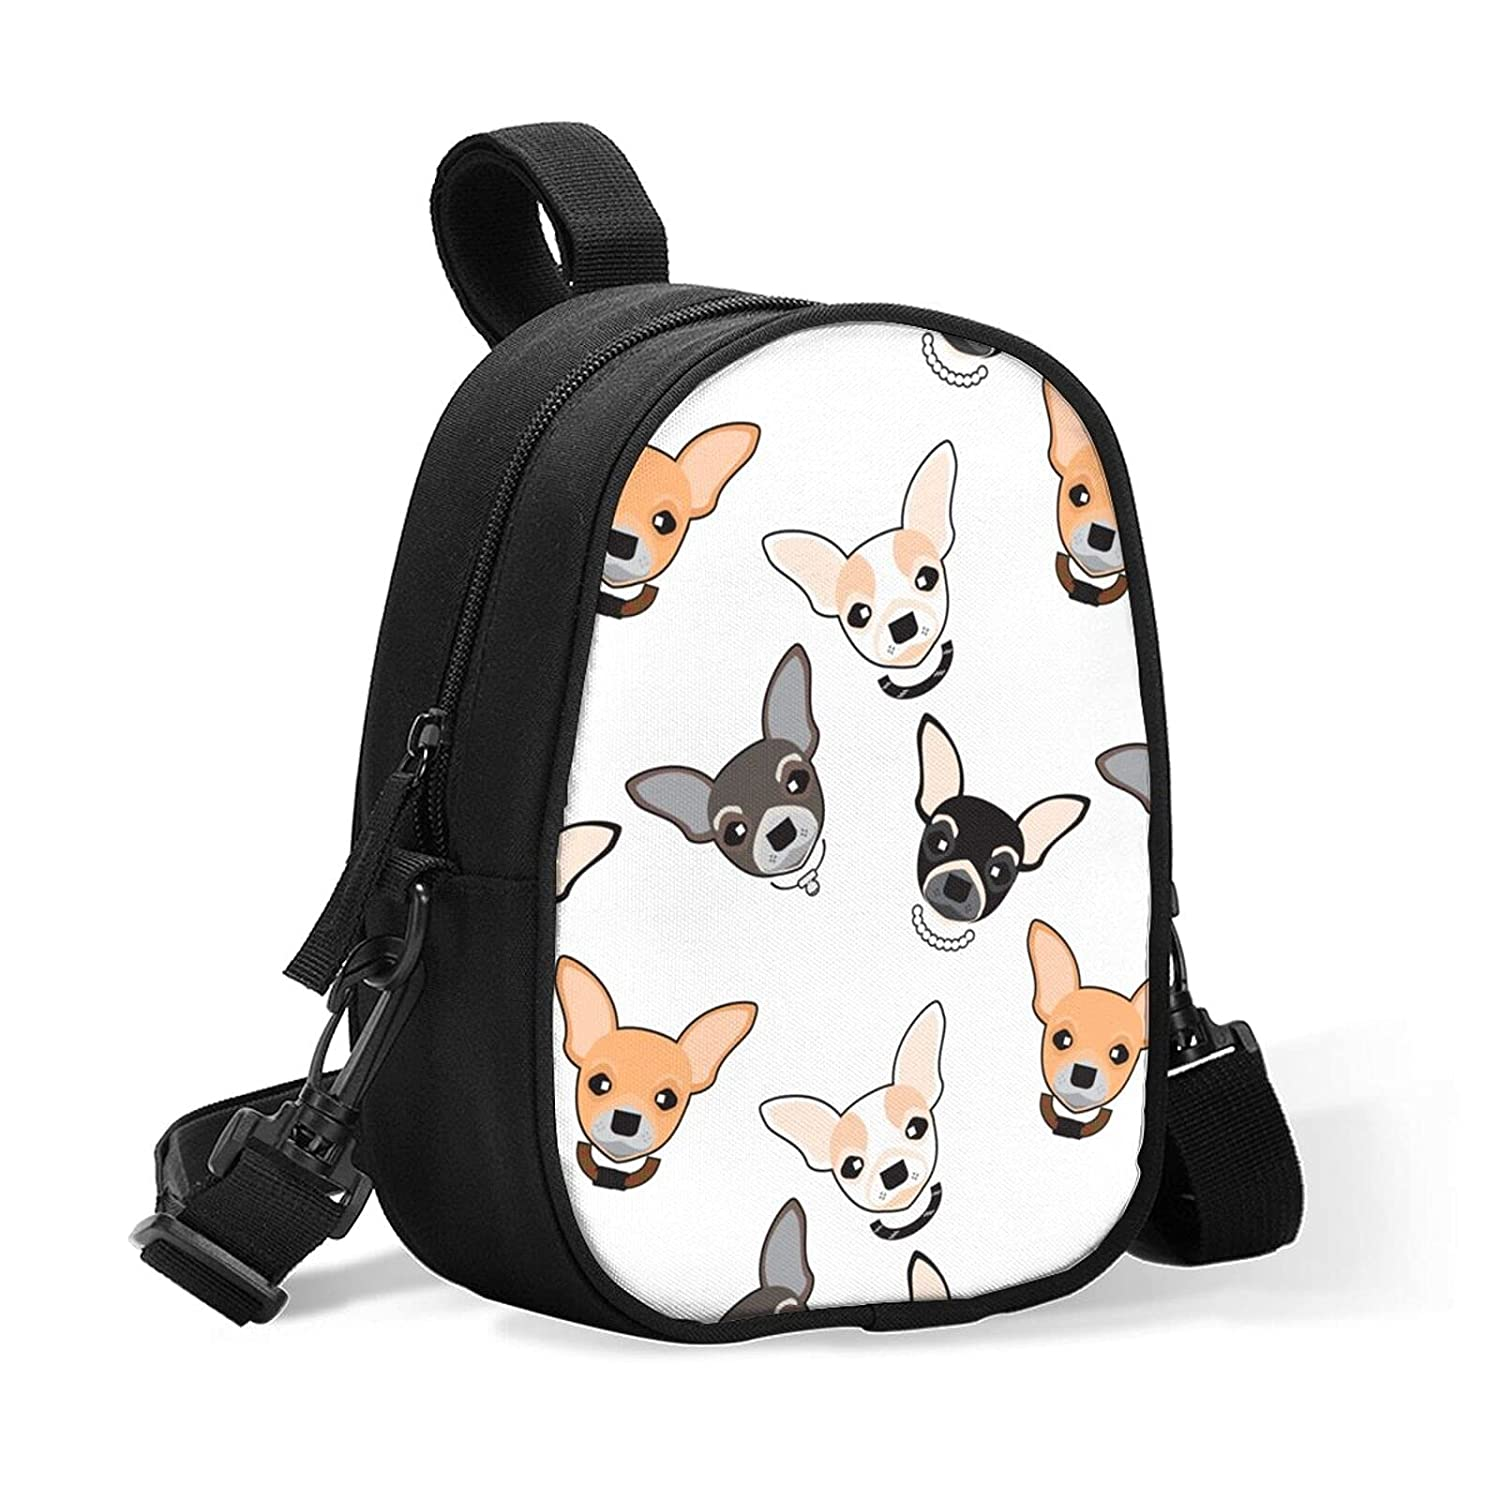 New products world's highest quality popular Insulated Baby Bottle Cooler Bag L White Chihuahua Our shop most popular Background On